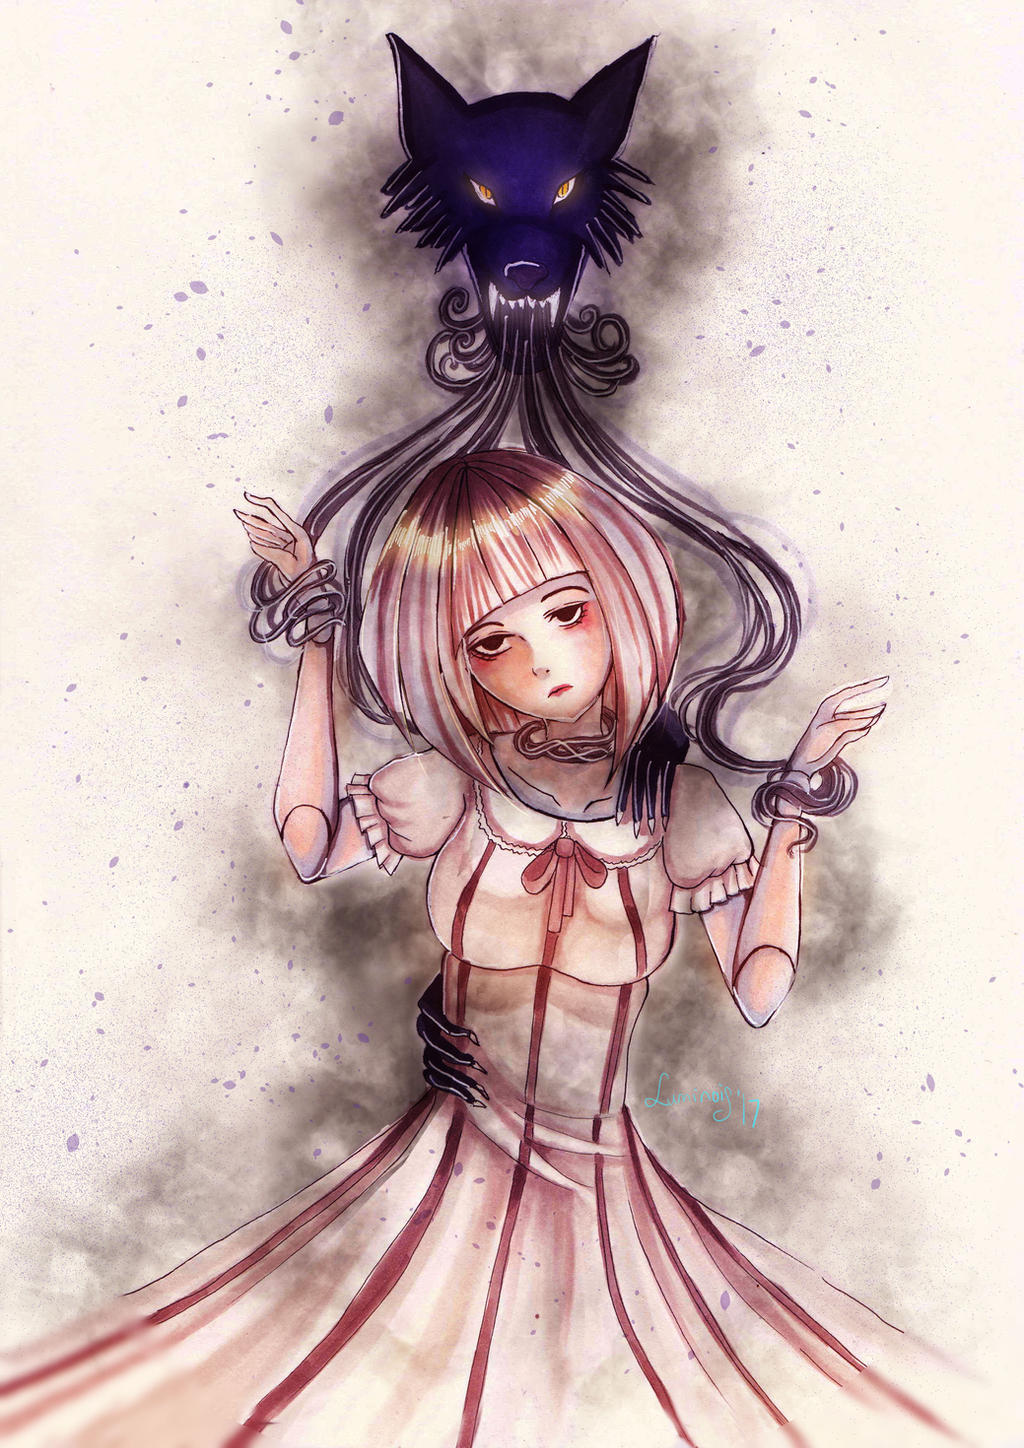 Controlled Doll by NoisArakis